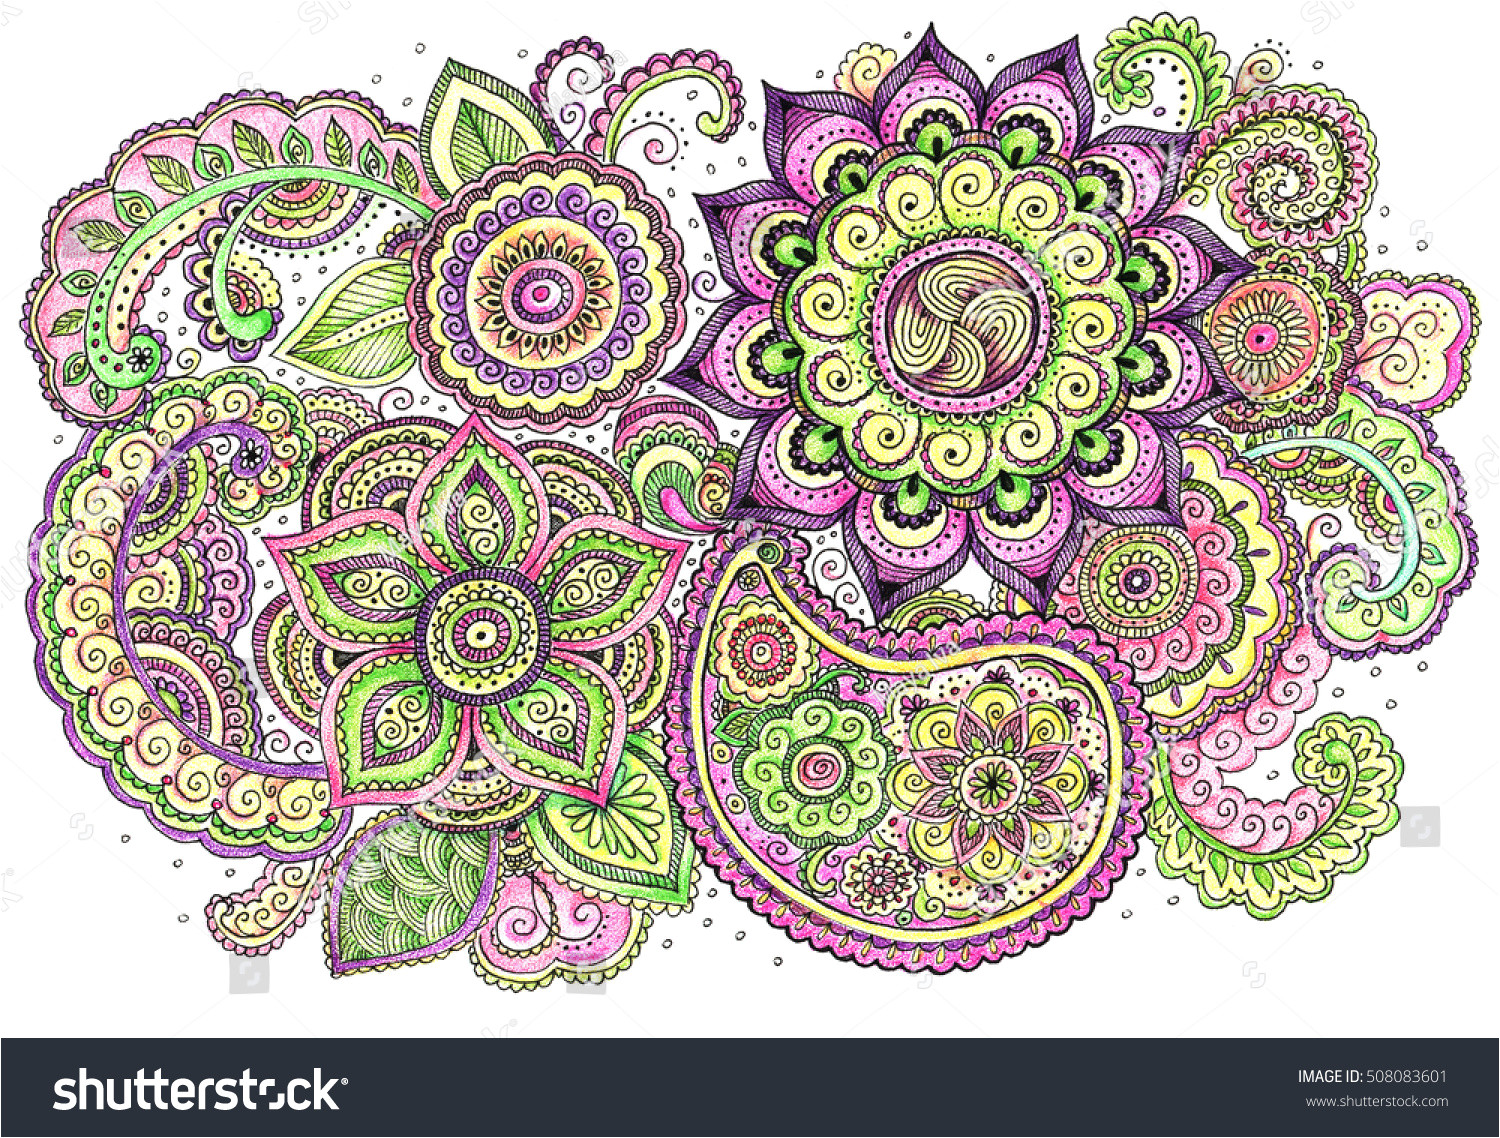 stock photo watercolor vintage floral illustration with detailed hand drawn zentangle boho style banner 508083601 jpg